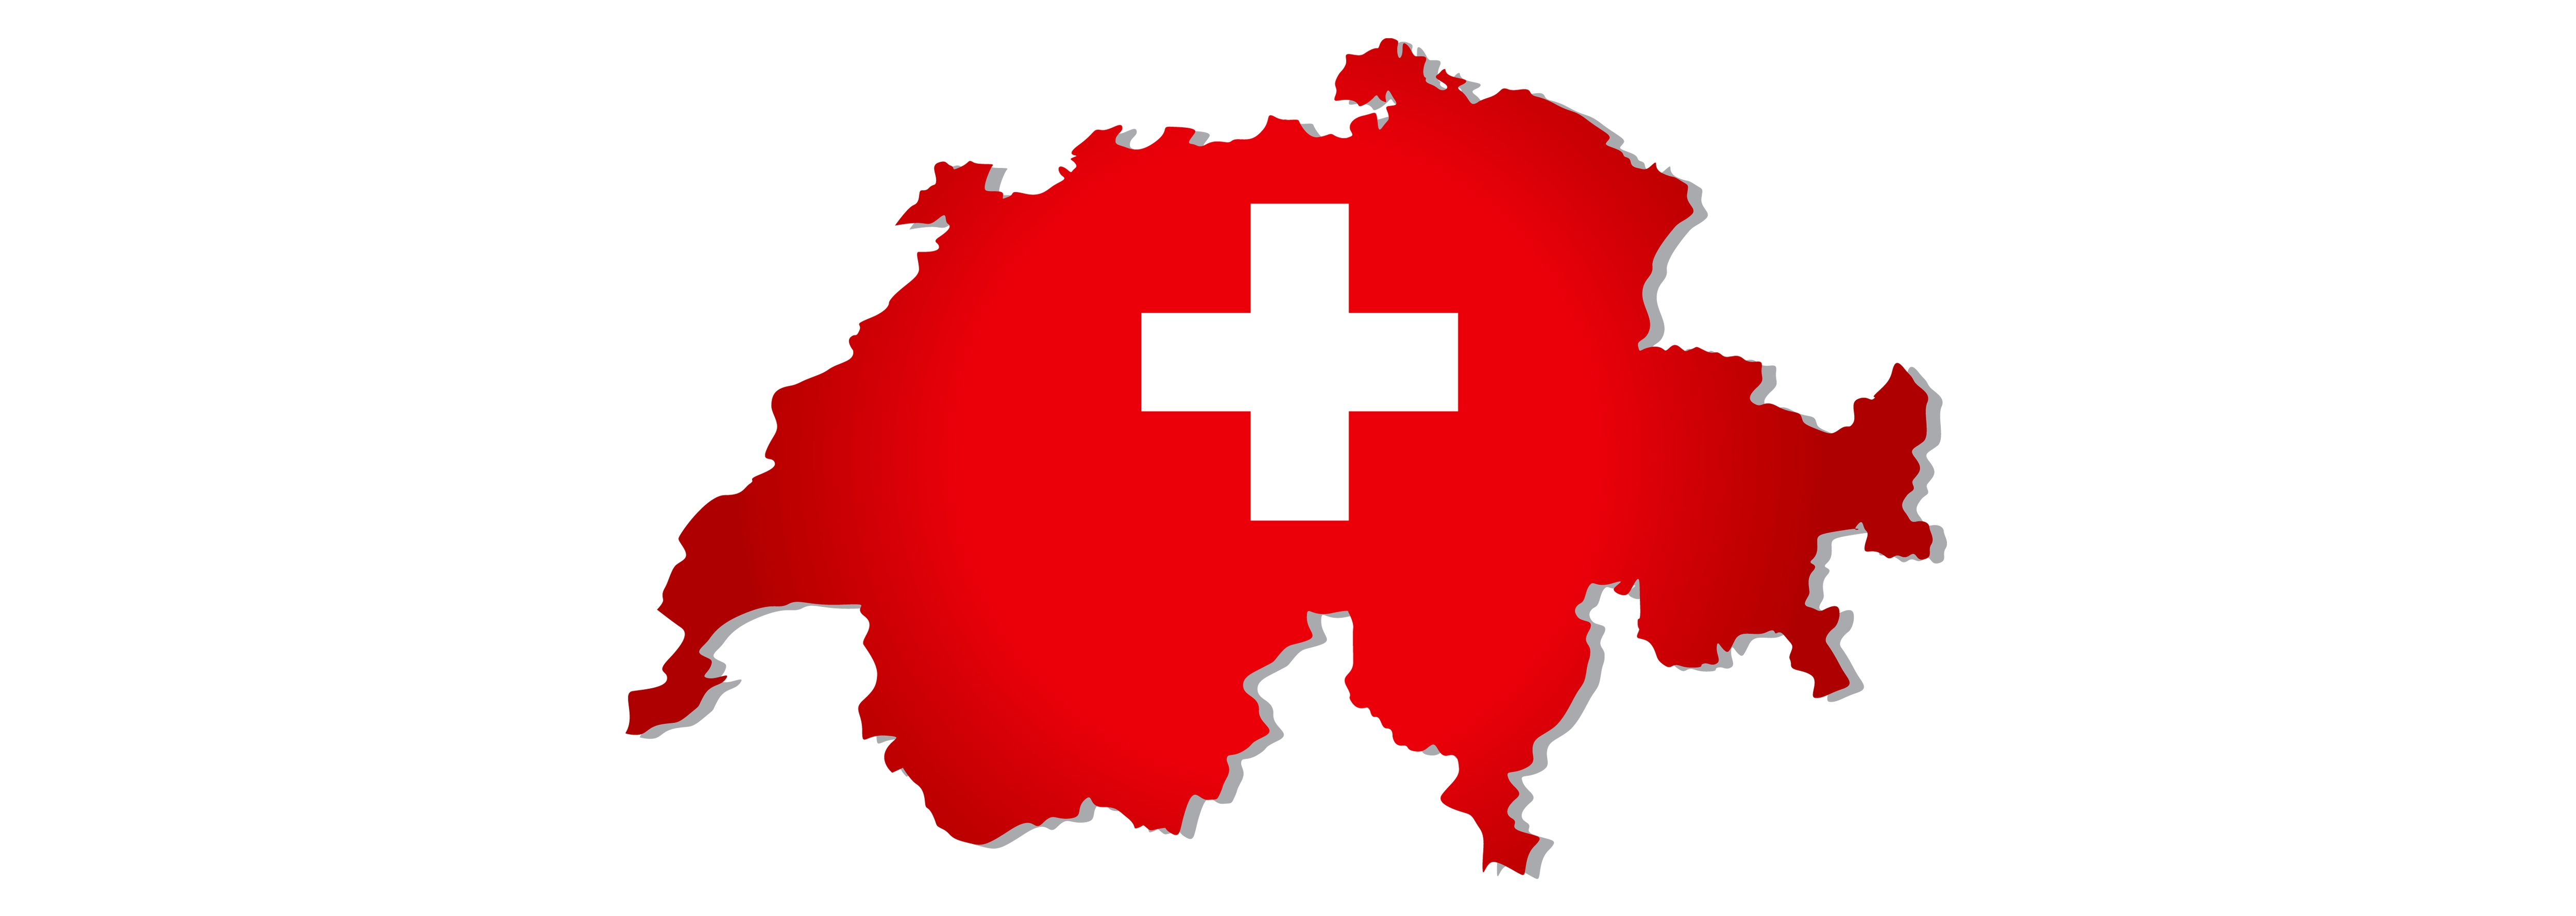 Switzerland in 2018 – The Re-birth of Federalism?